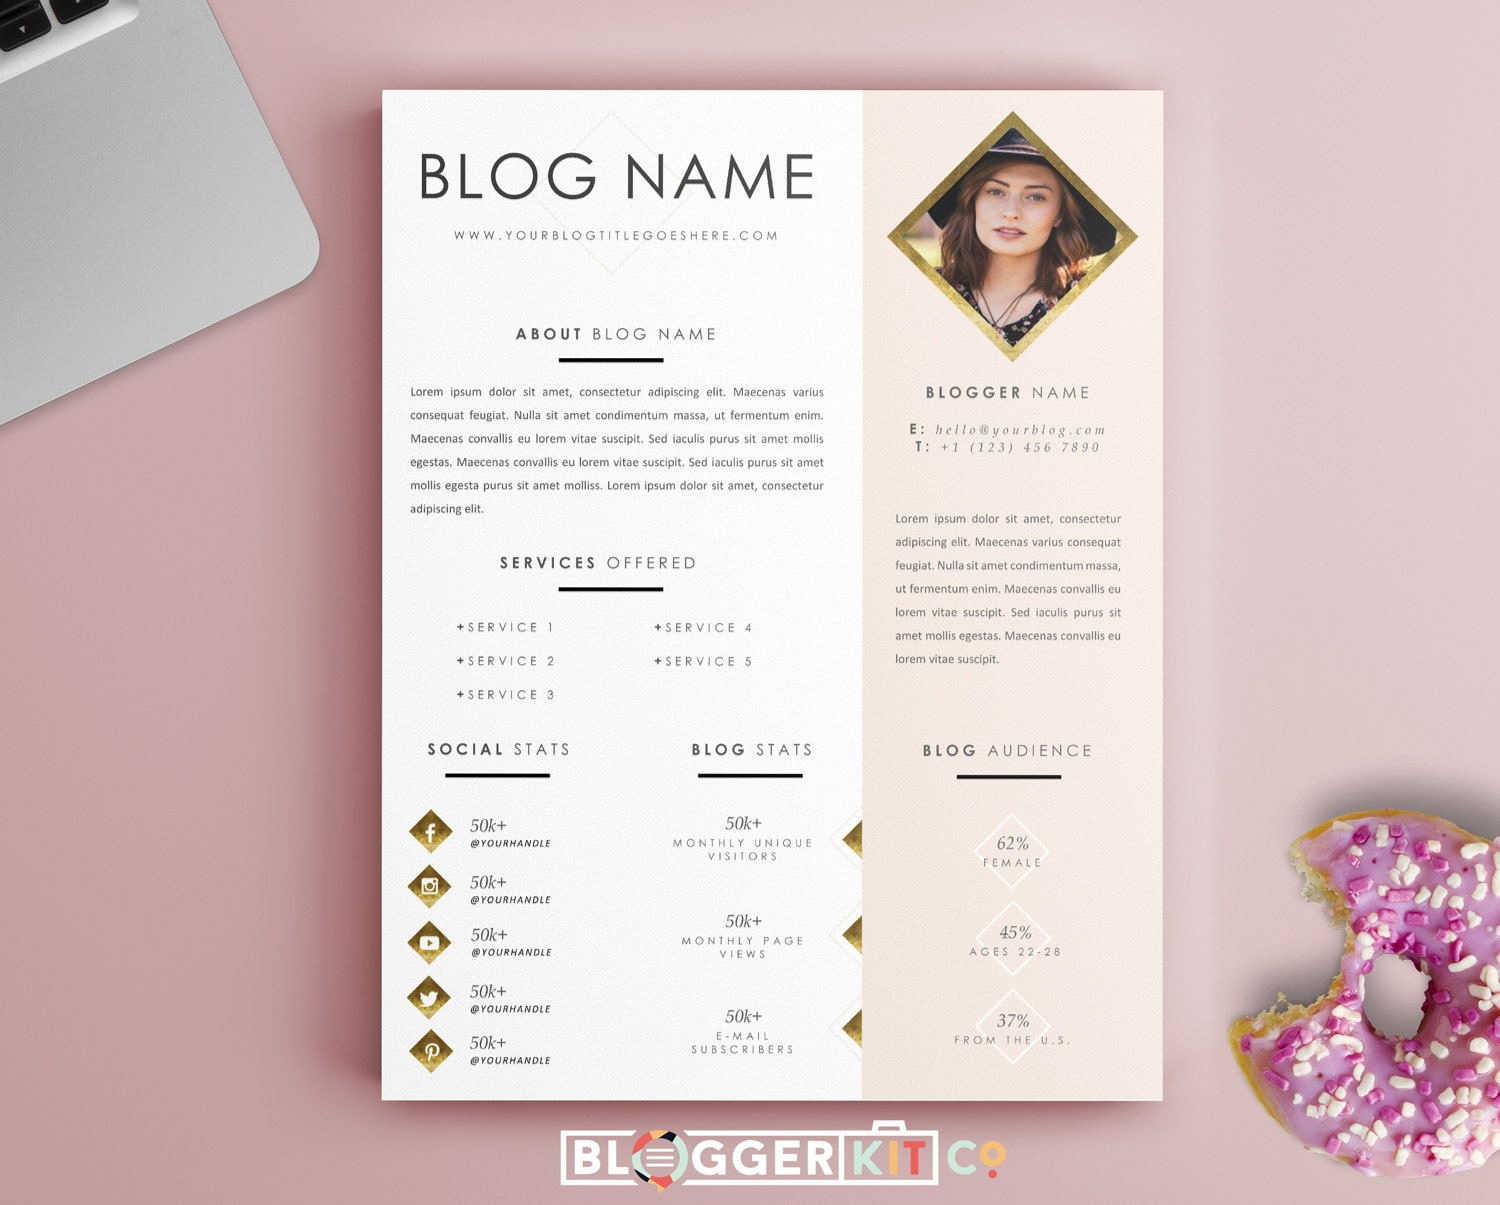 Amazing 1 Page Resume Format Download Tiny 1 Page Resume Or 2 Square 1 Year Experience Java Resume Format 11x17 Graph Paper Template Youthful 15 Year Old Funny Resume Pink15 Year Old Student Resume Resume Template | Etsy